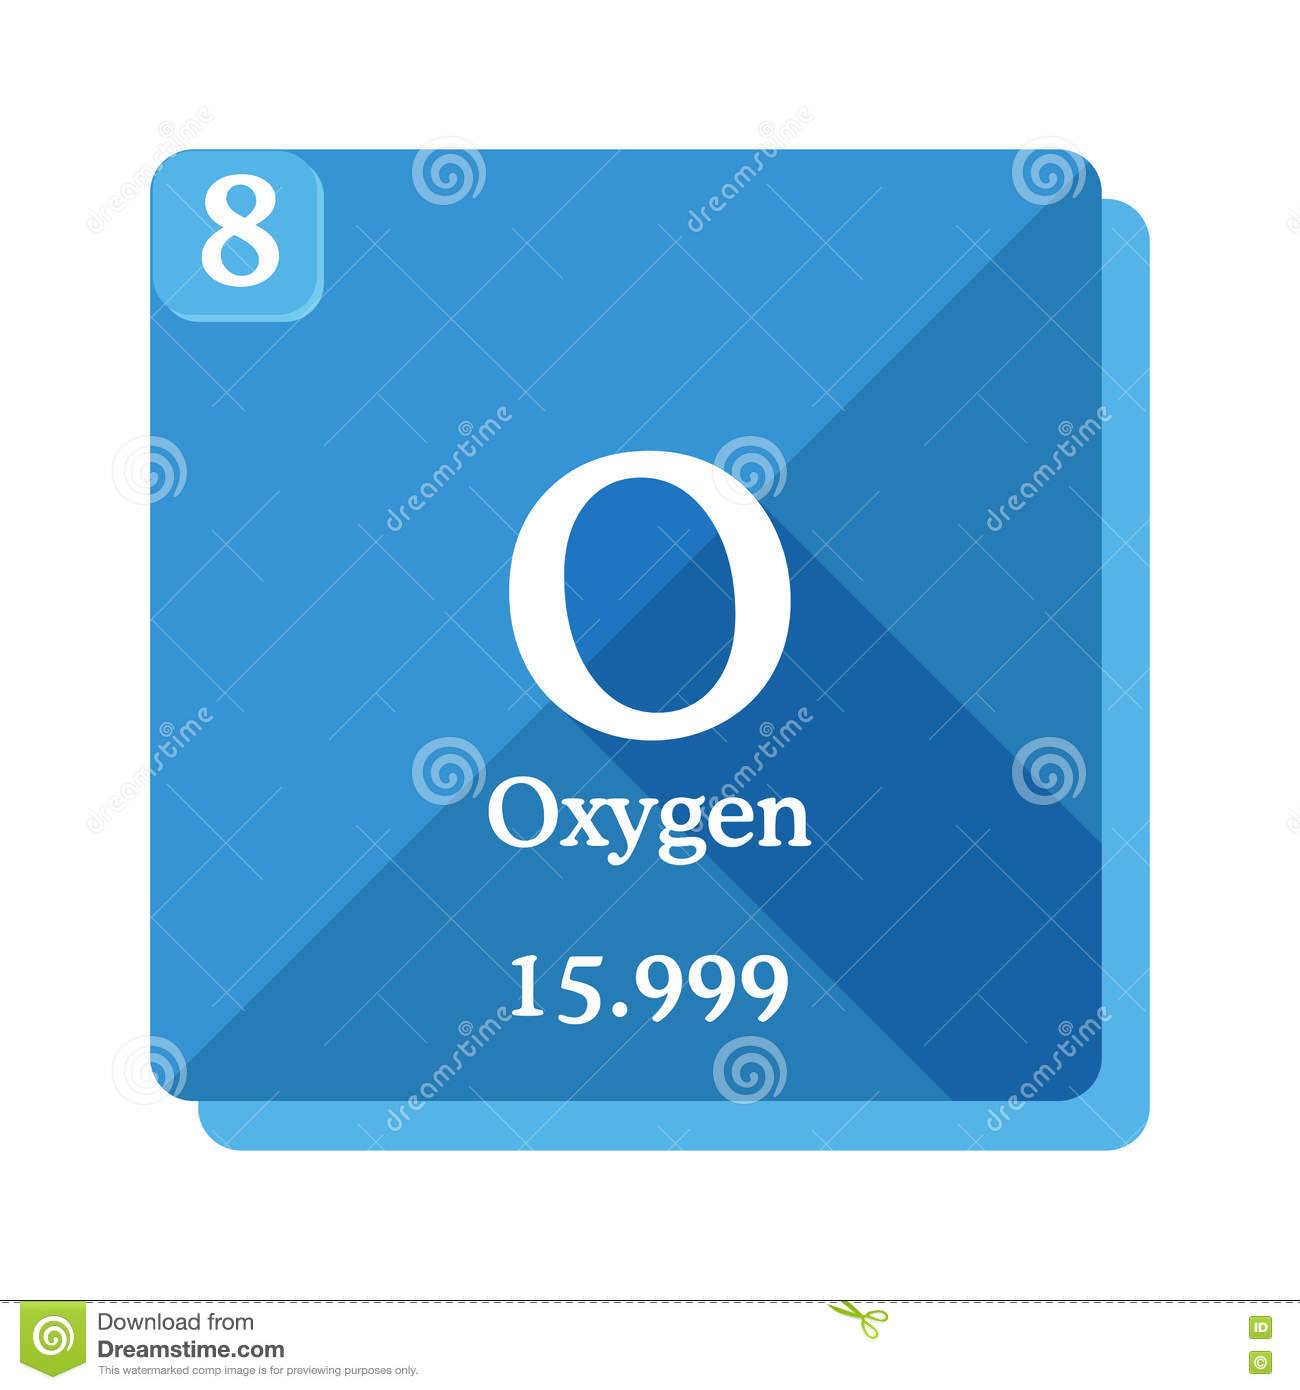 Oxygen chemical element periodic table of the elements stock oxygen chemical element periodic table of the elements buycottarizona Image collections